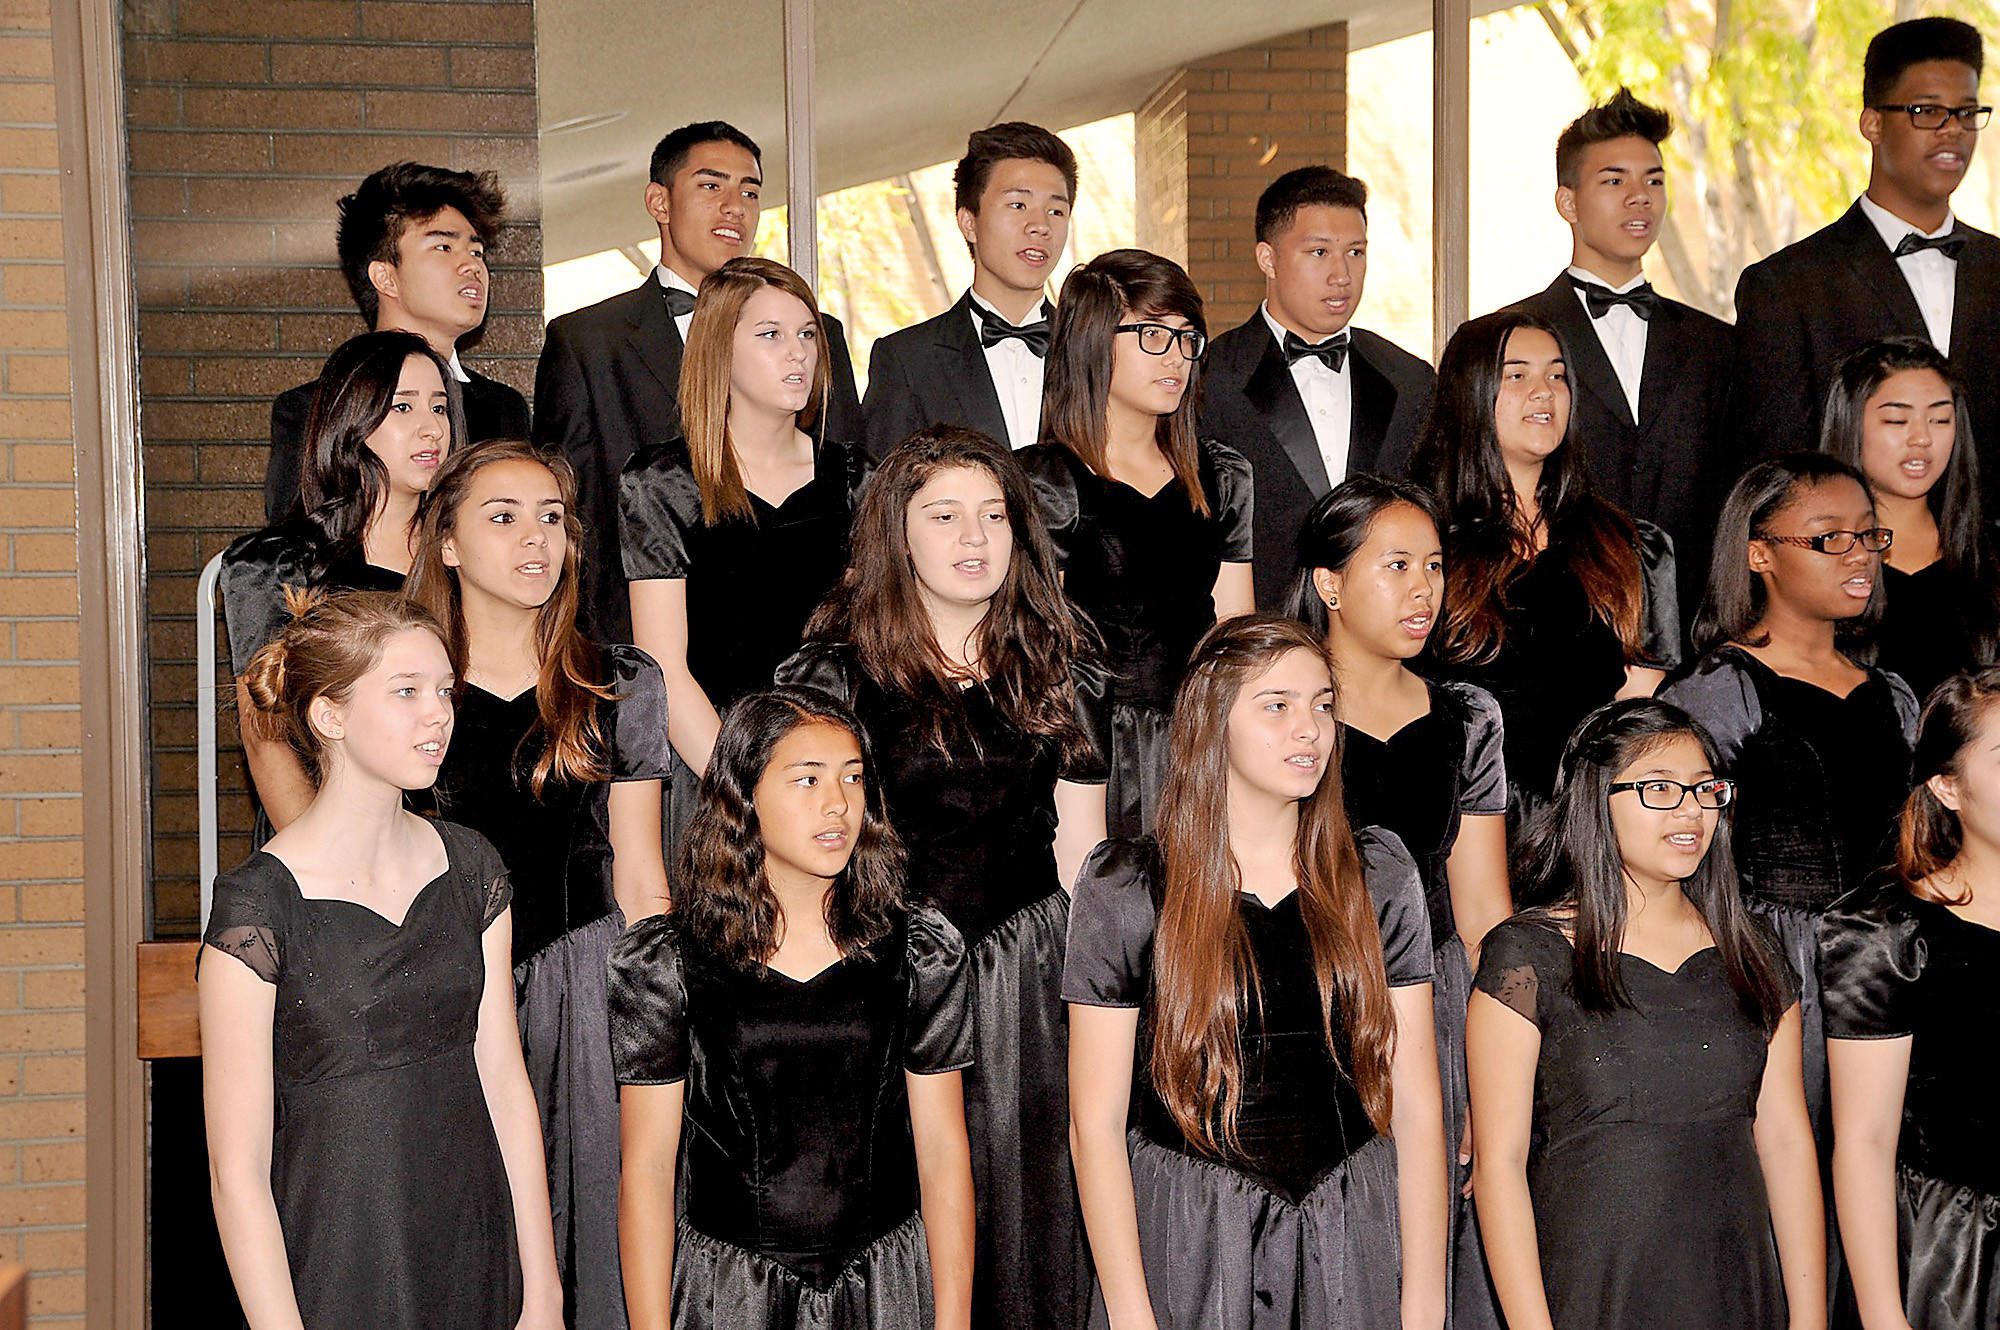 Glendale High School's a cappella choir will be among the 28 Southland high school choirs performing in the Los Angeles Master Chorale's 25th annual High School Choir Festival on Friday, May 2, at the Walt Disney Concert Hall.